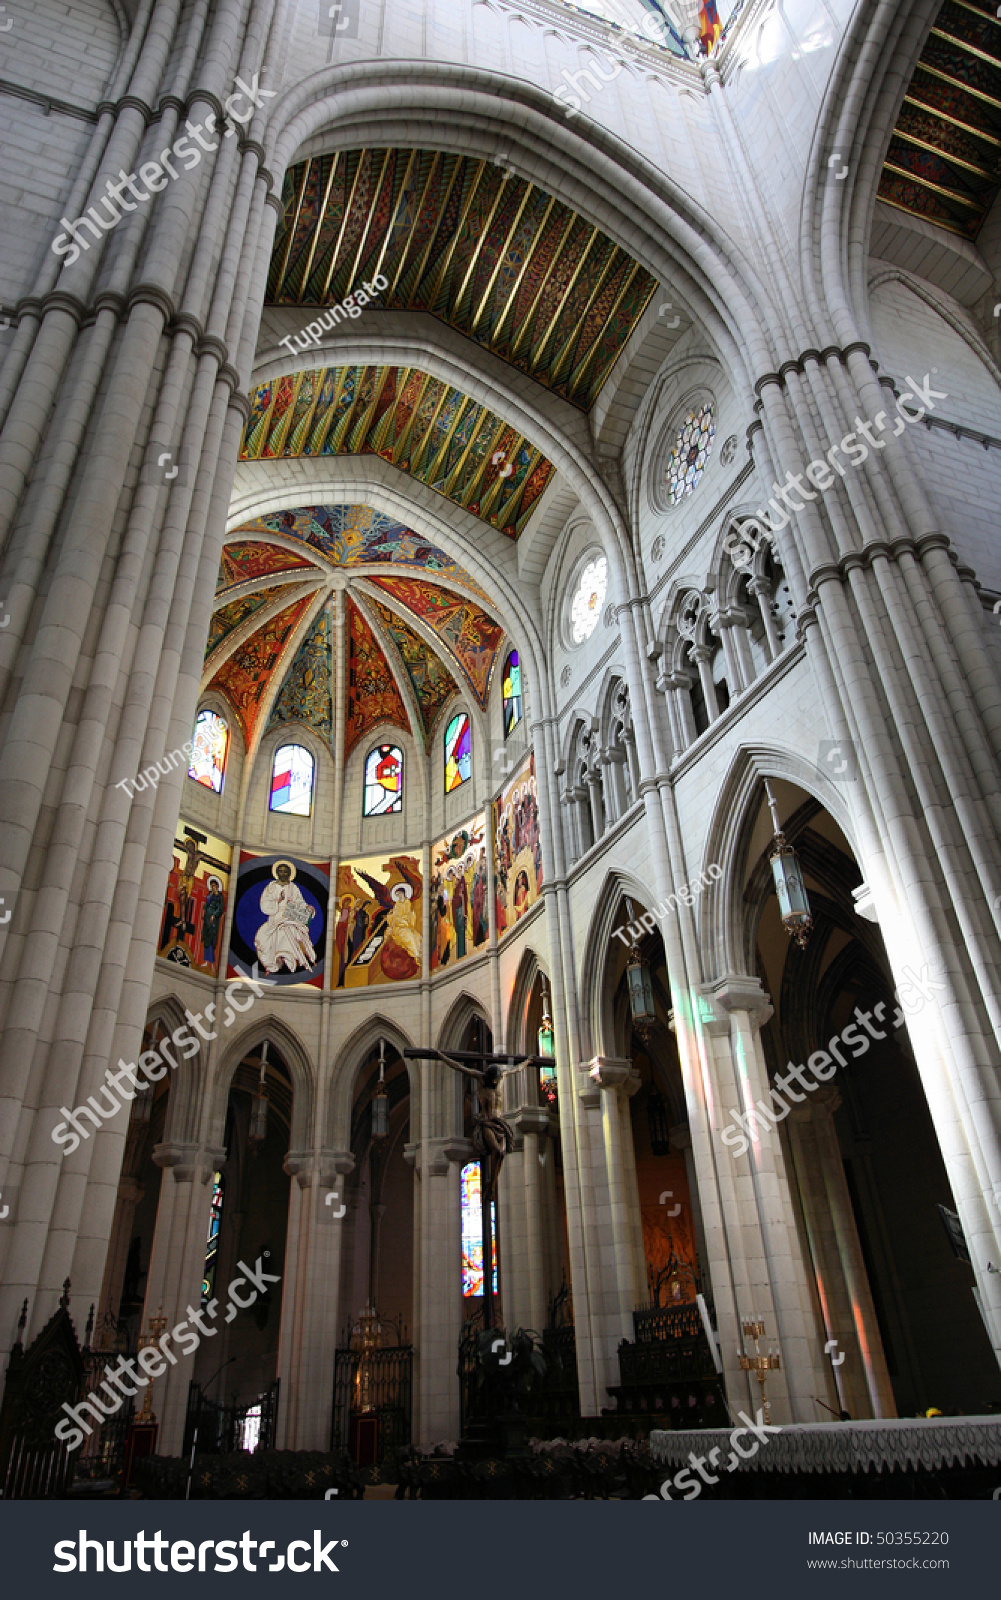 Beautiful Neo Gothic Interior Of Santa Maria La Real De Almudena